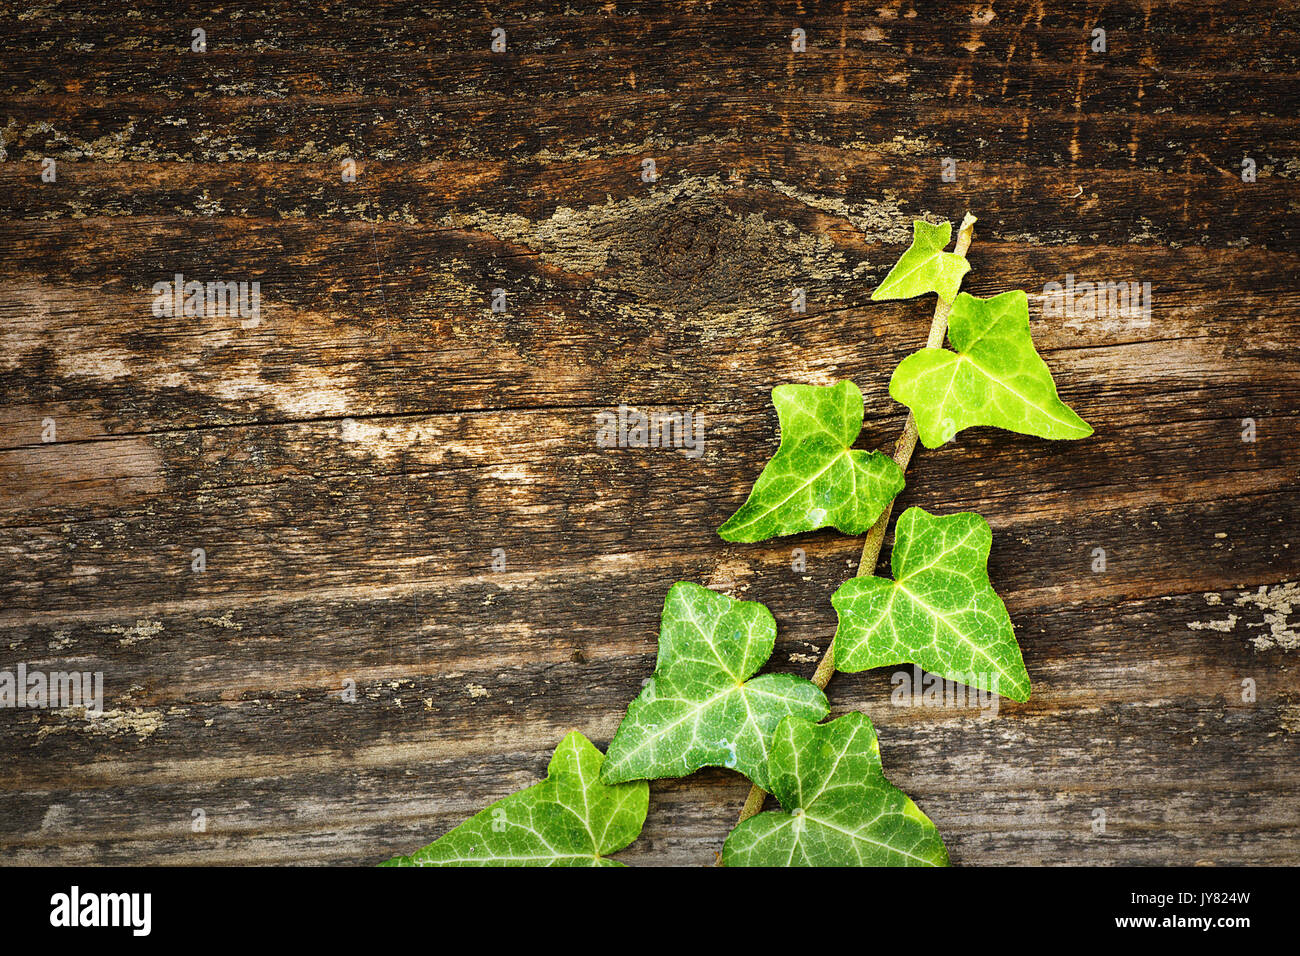 green wild ivy growing on wooden fence, beautiful contrast on natural wood texture - Stock Image